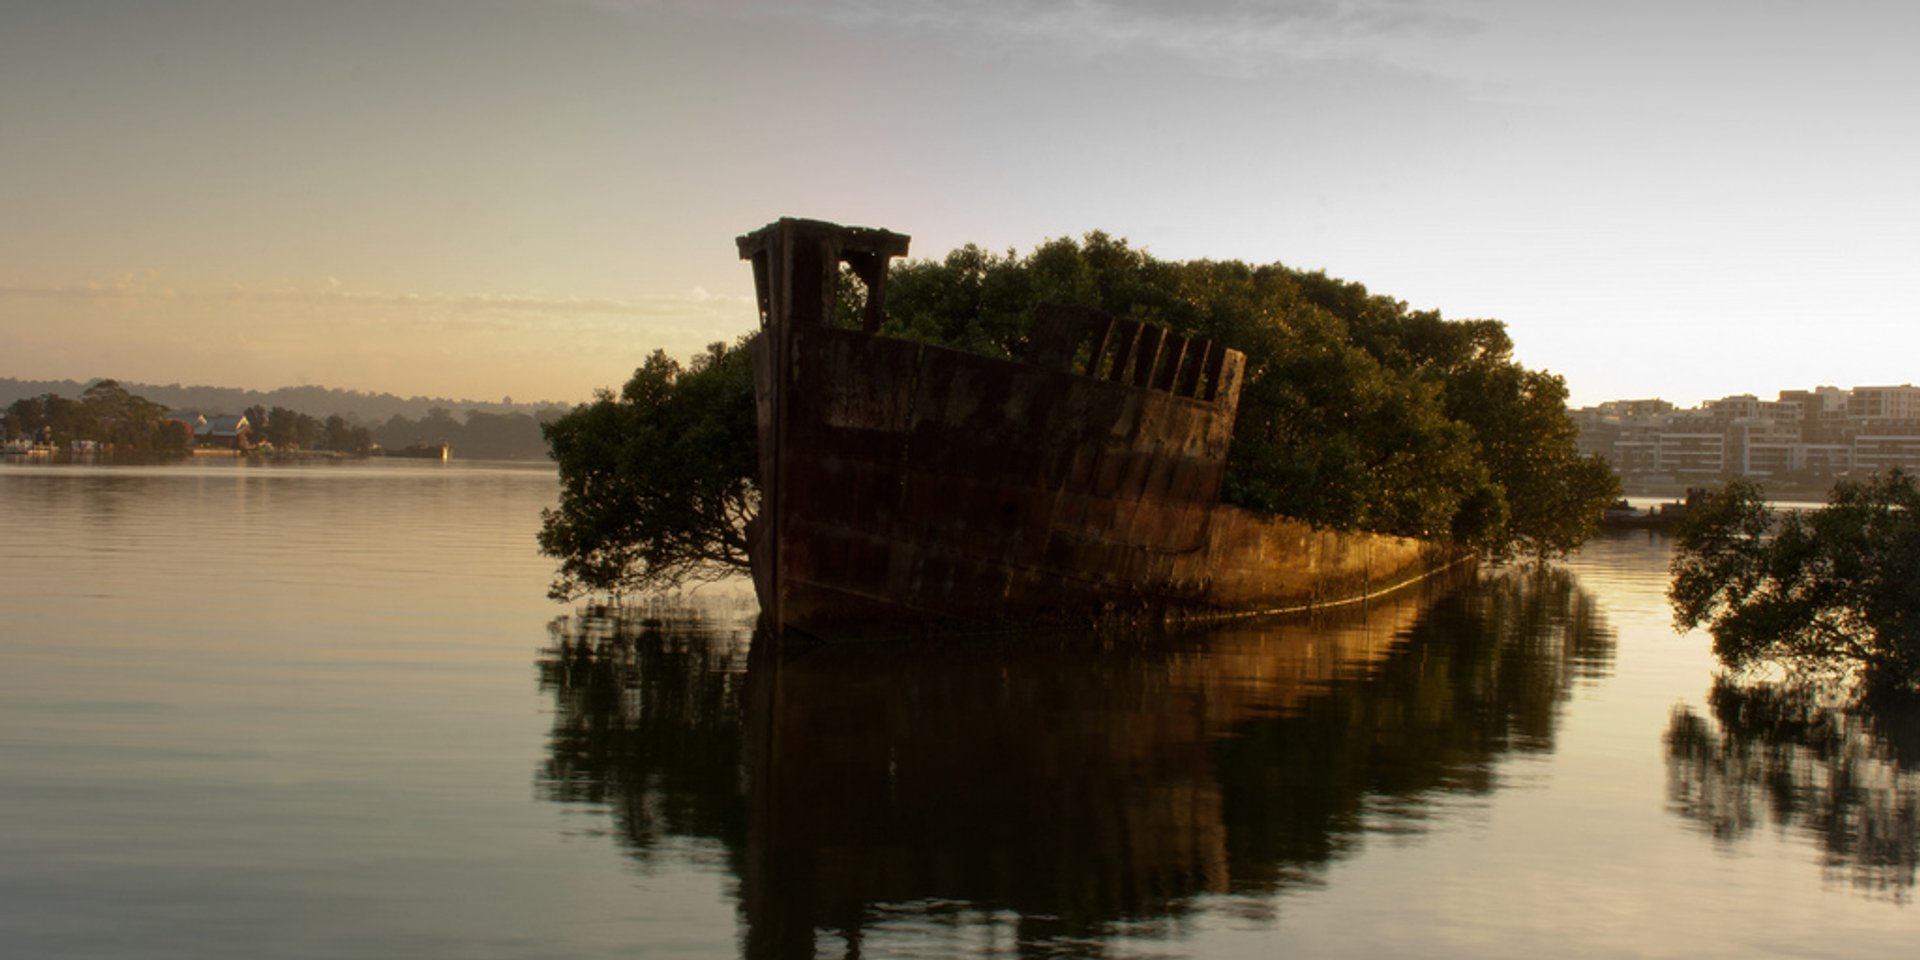 SS Ayrfield Shipwreck in Sydney 2020 - Best Time